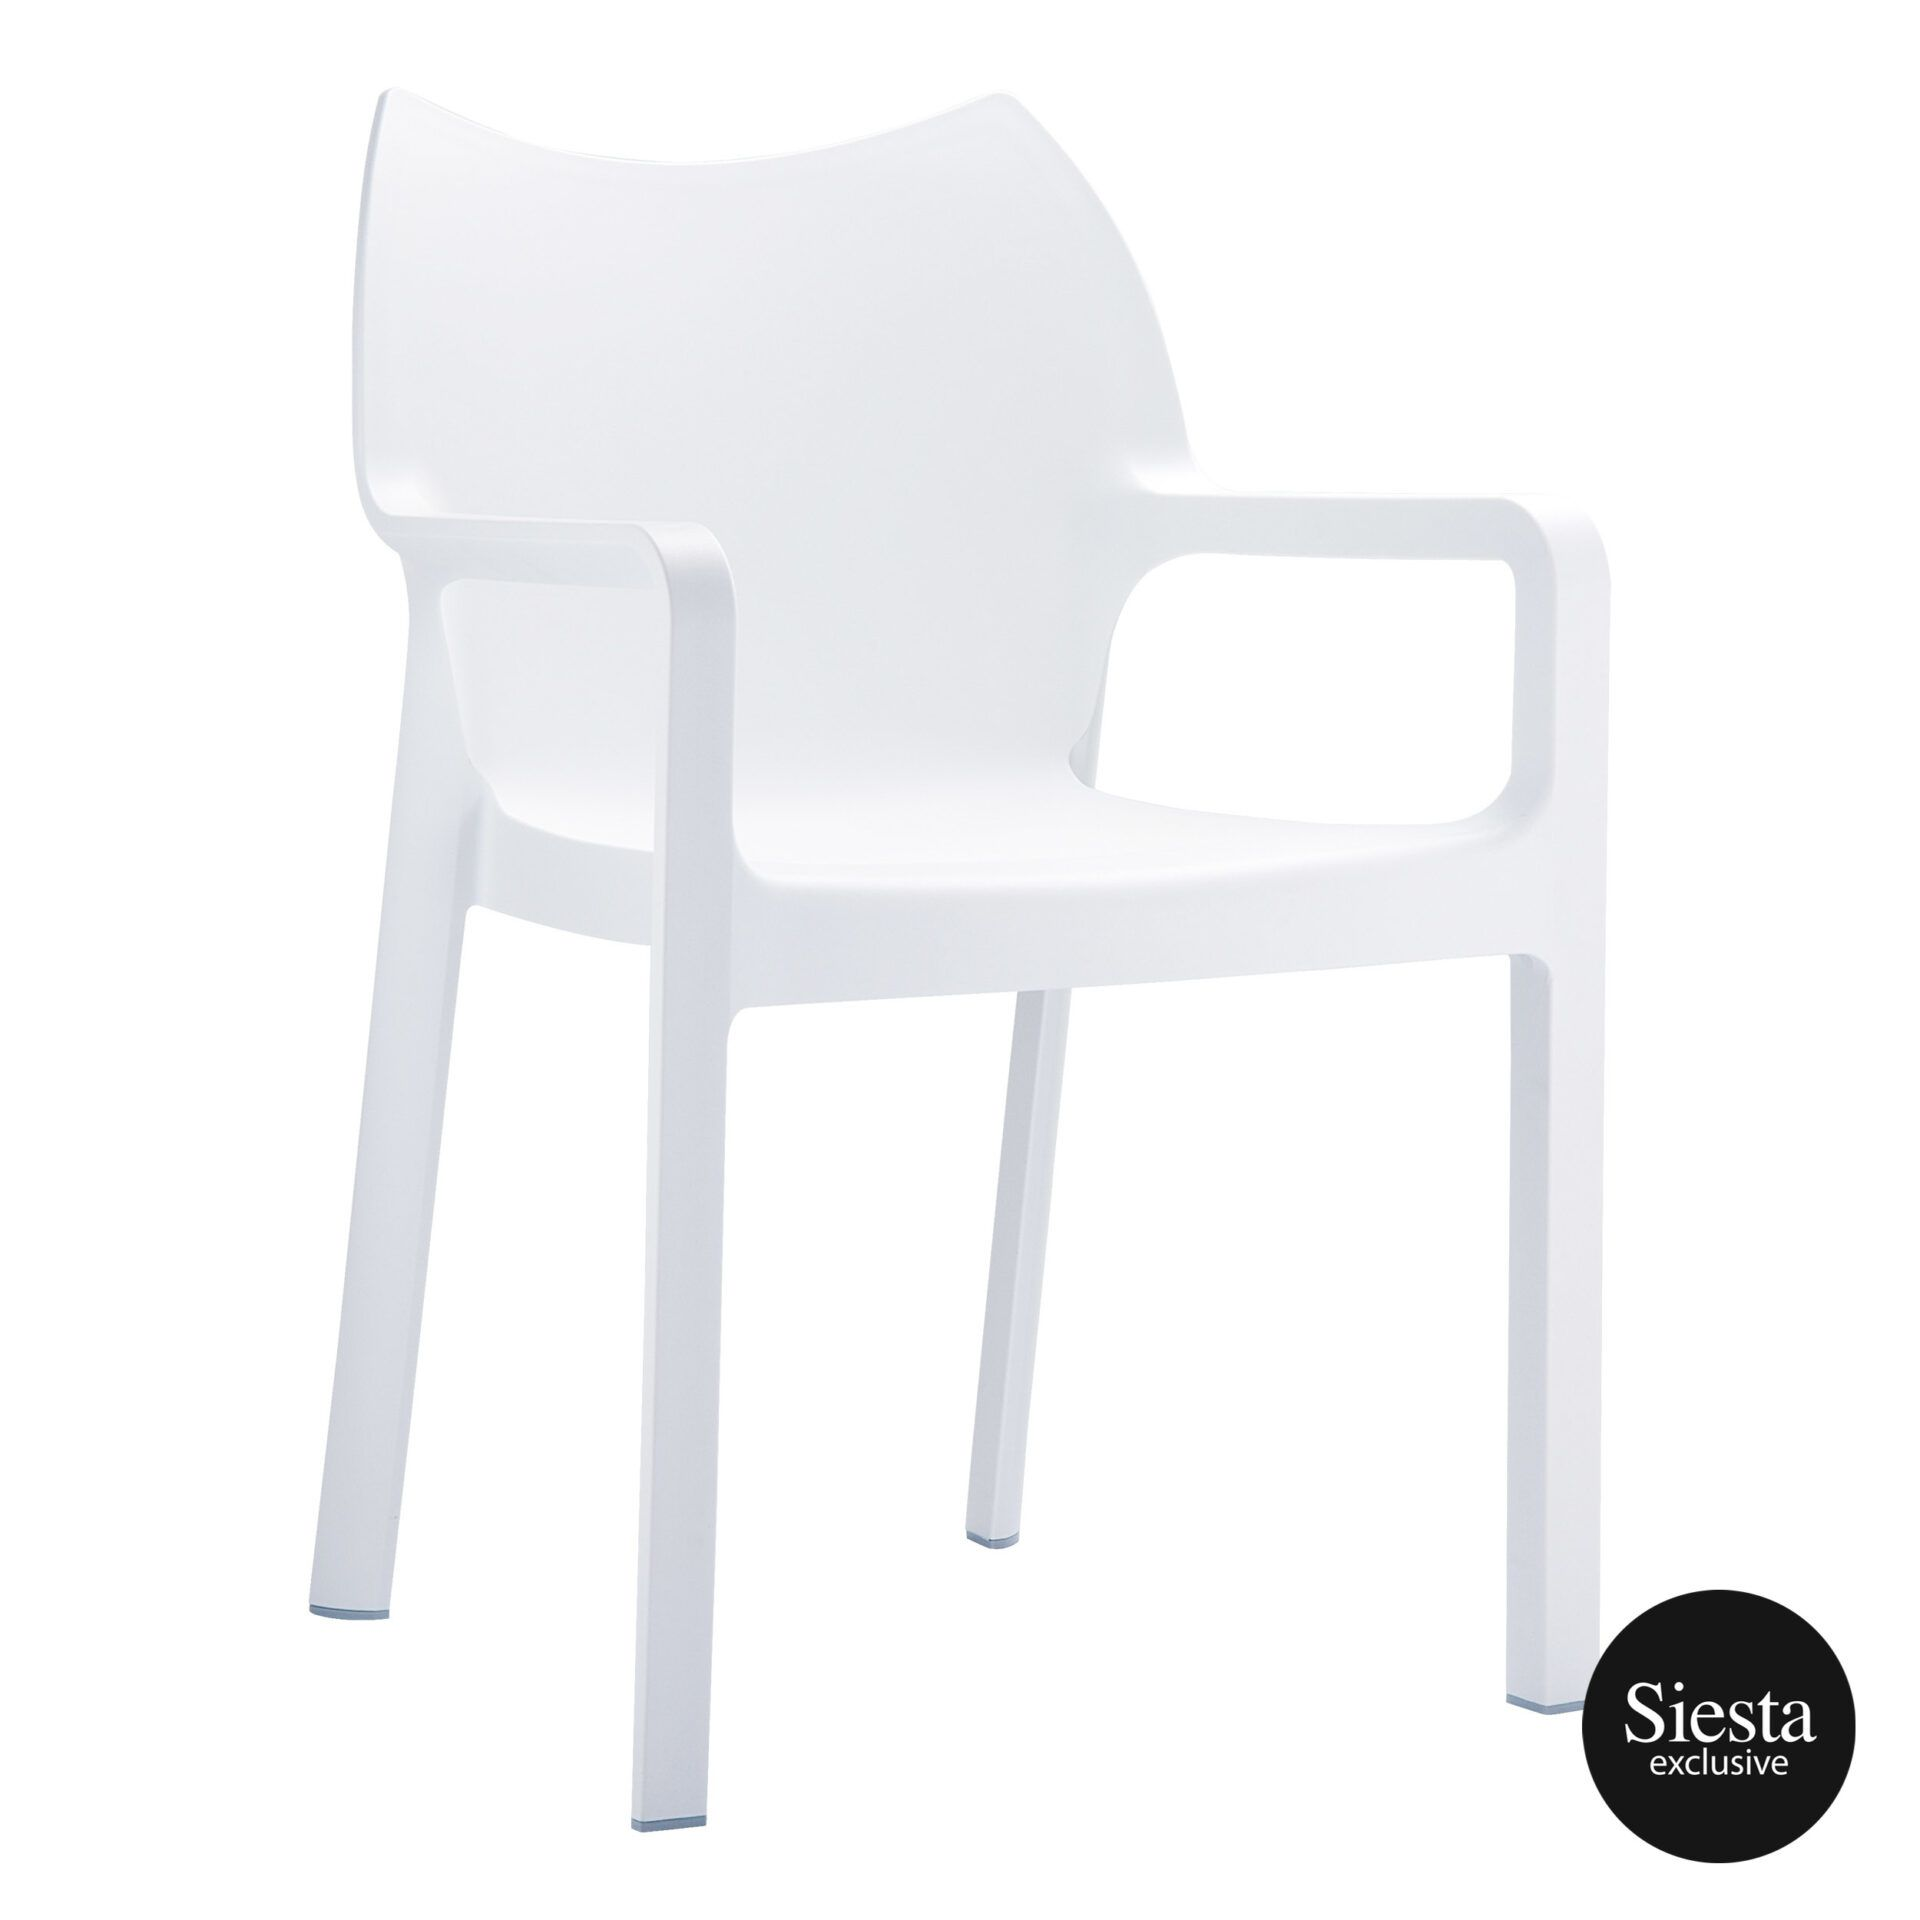 outdoor plastic seating diva chair white front side 1